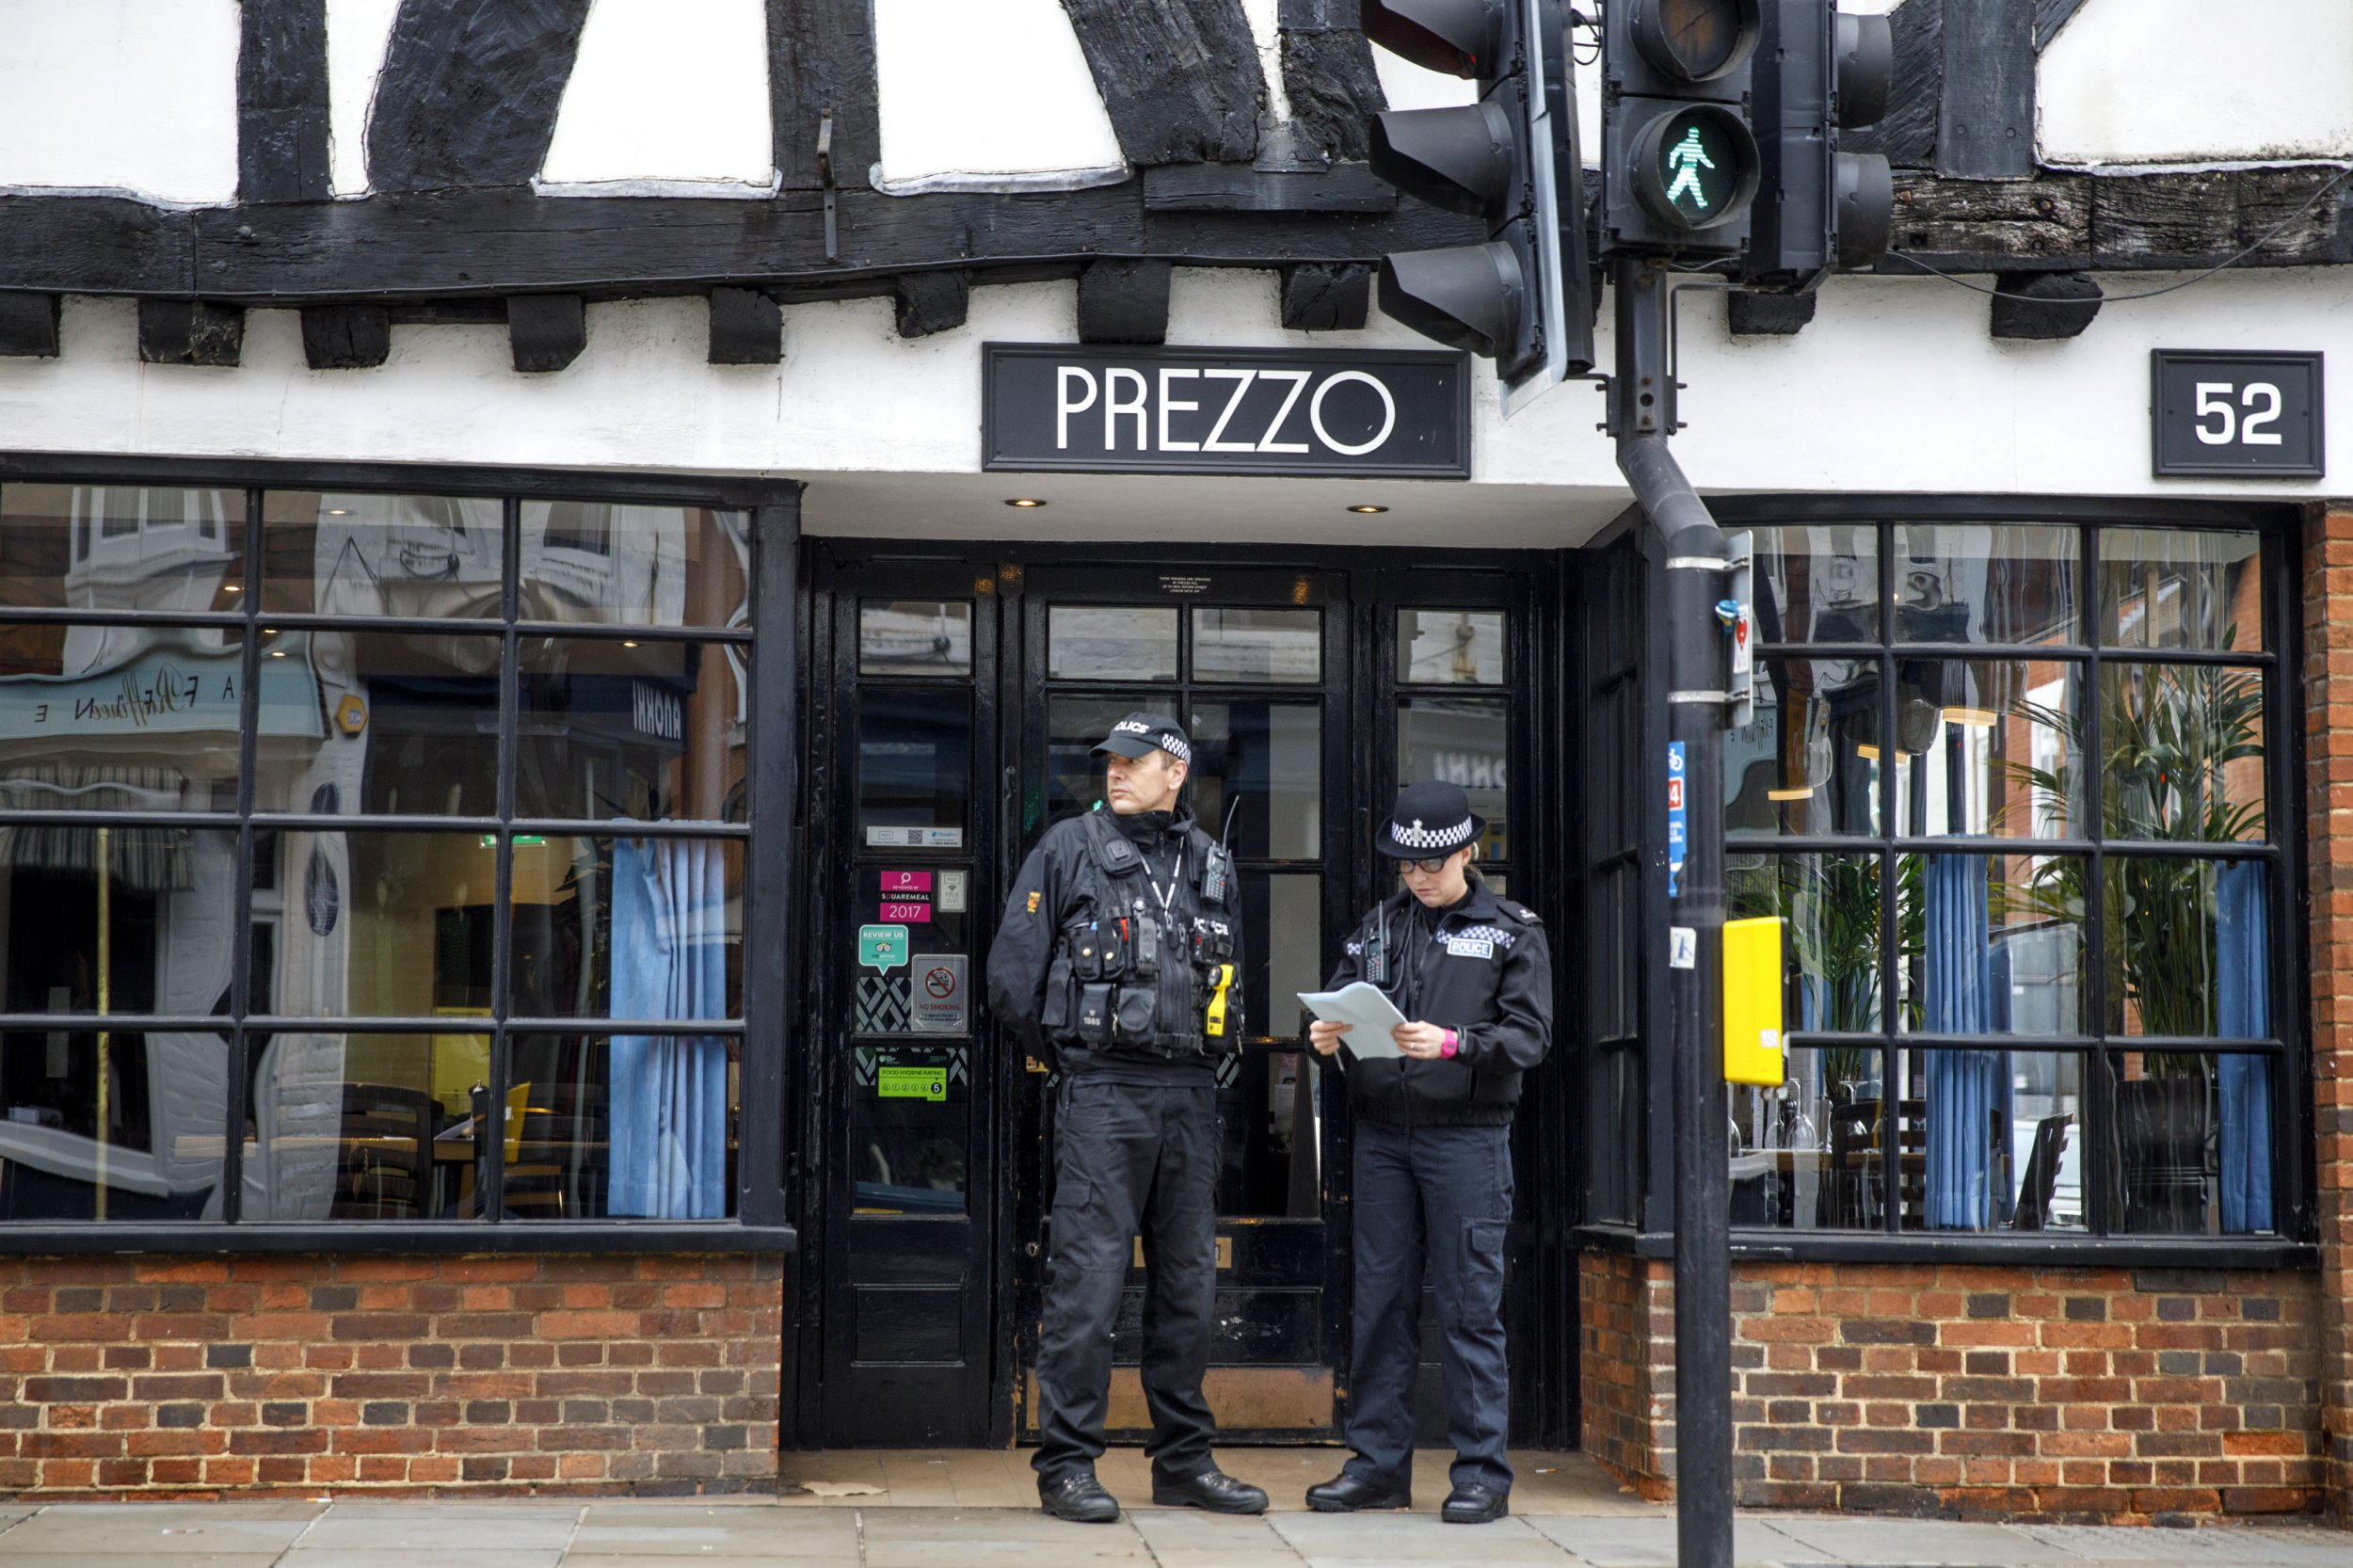 epa07026672 Police officers stand guard outside a Prezzo restaurant in Salisbury, Britain, 17 September 2018, where a 'medical incident' was reported a day earlier. According to reports, police sealed off as a precautionary measure a Prezzo restaurant in Salisbury and surroundings following a 'medical incident' on 16 September, reportedly involving a man and a woman, who were taken ill. According to emergency services, the two persons were conscious and being treated at the scene. The town was in the spotlight in March 2018, when former Russian spy Sergei Skripal and his daughter Yulia became seriously ill in Salisbury after allegedly being exposed to Novichok nerve agent. EPA/TOLGA AKMEN